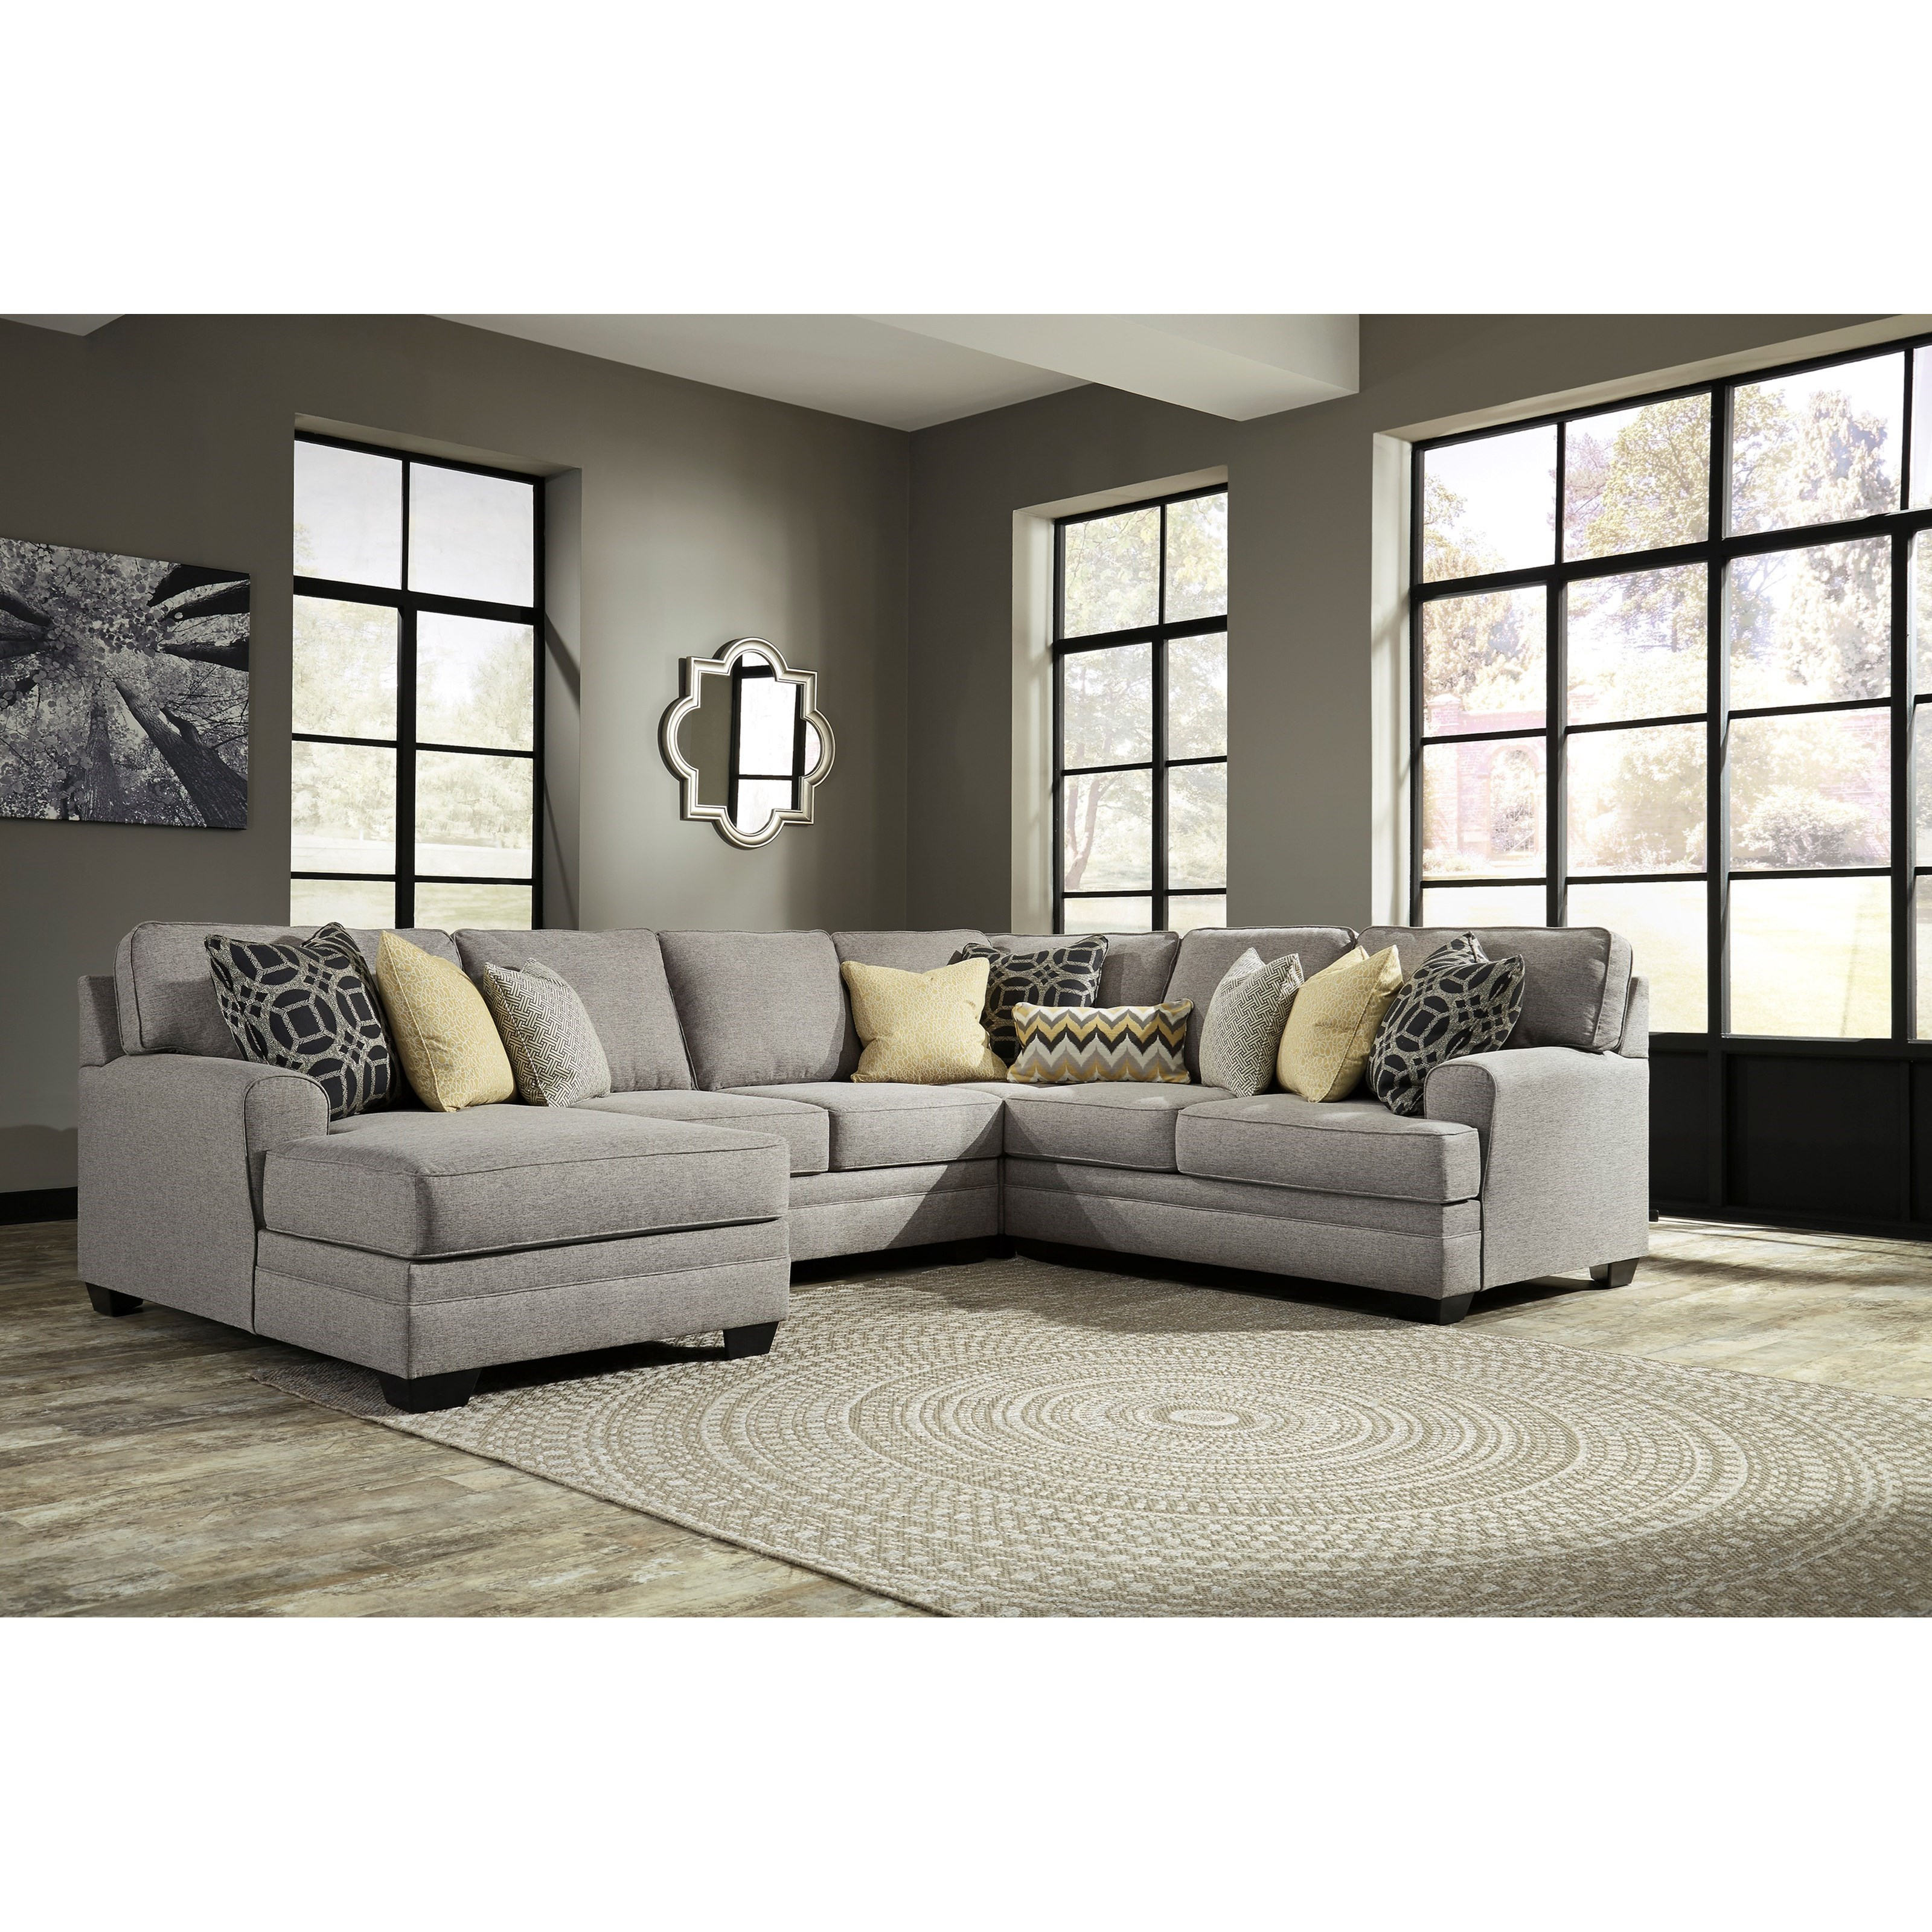 Benchcraft Cresson Contemporary 4-Piece Sectional With